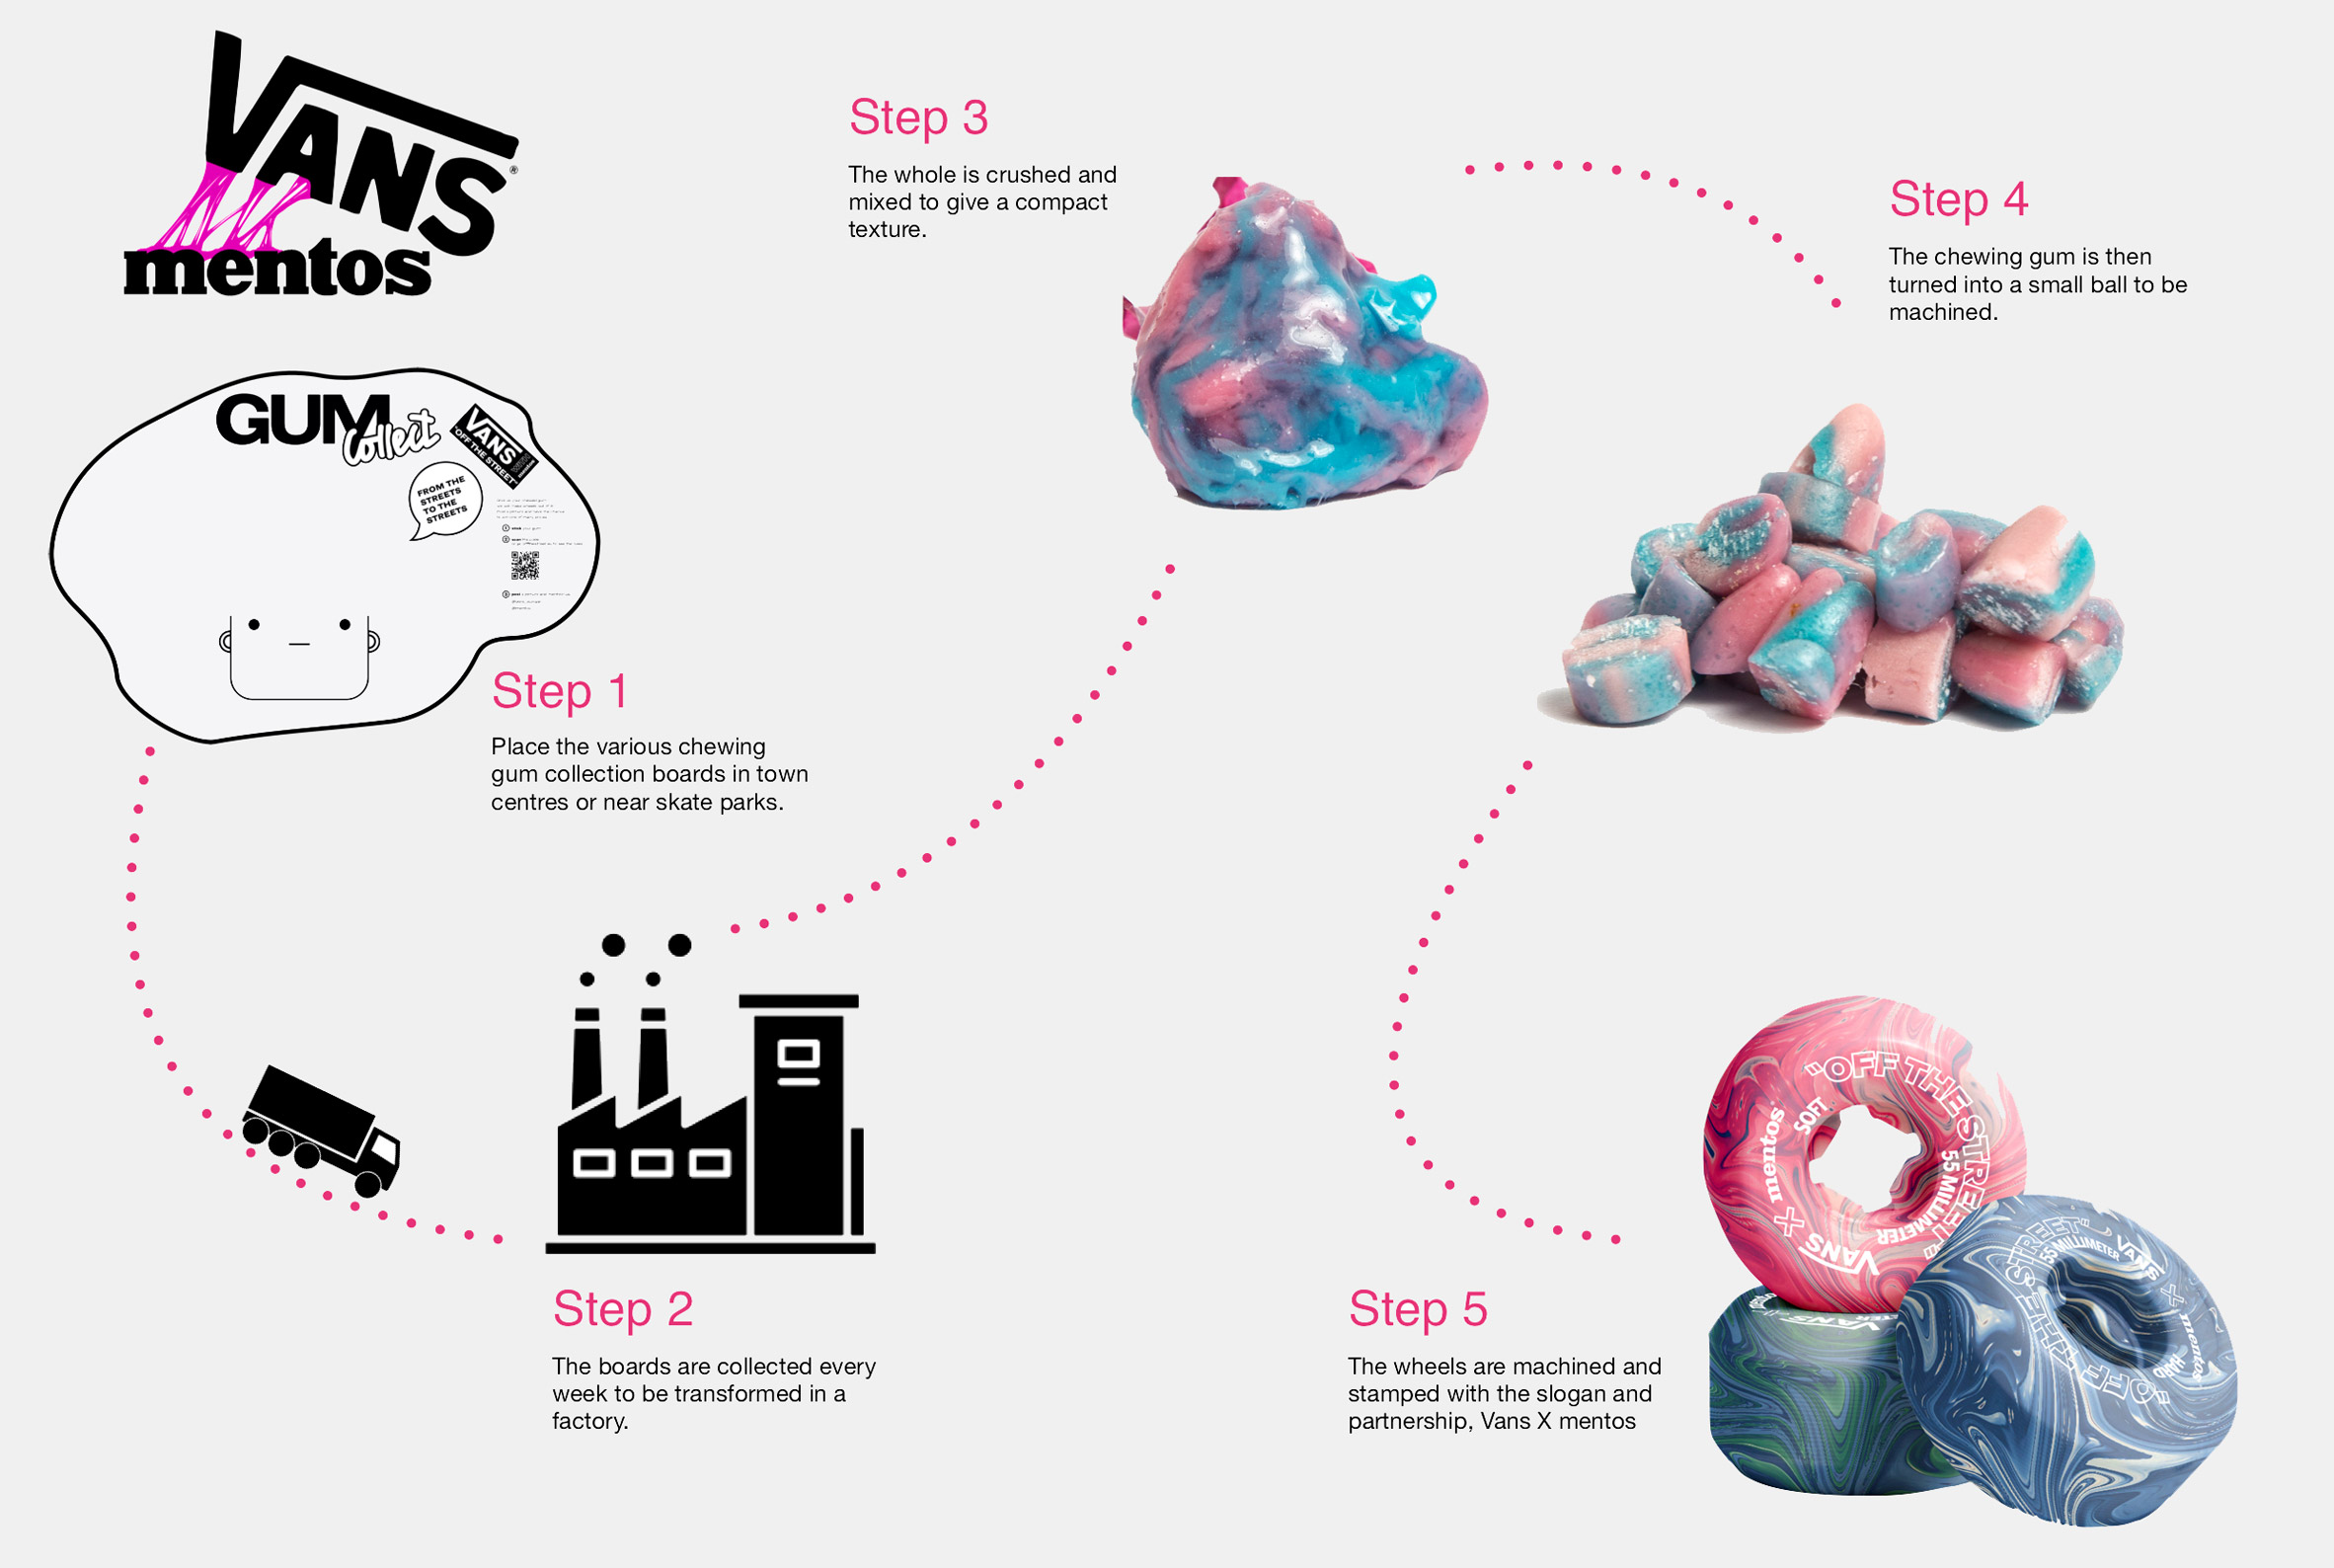 Illustration of process behind collection and recycling chewing gum into skateboard wheels